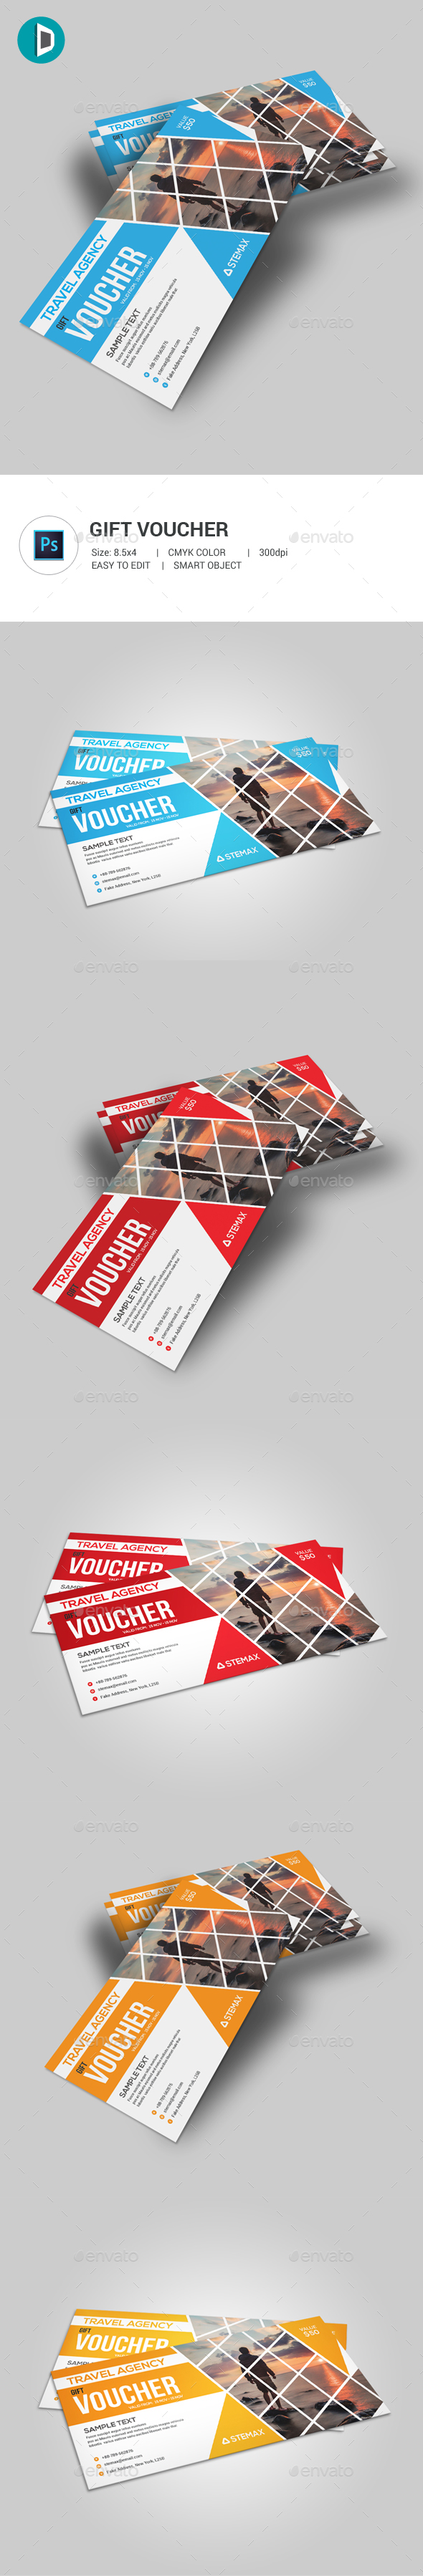 Travel Agency Gift Voucher - Loyalty Cards Cards & Invites